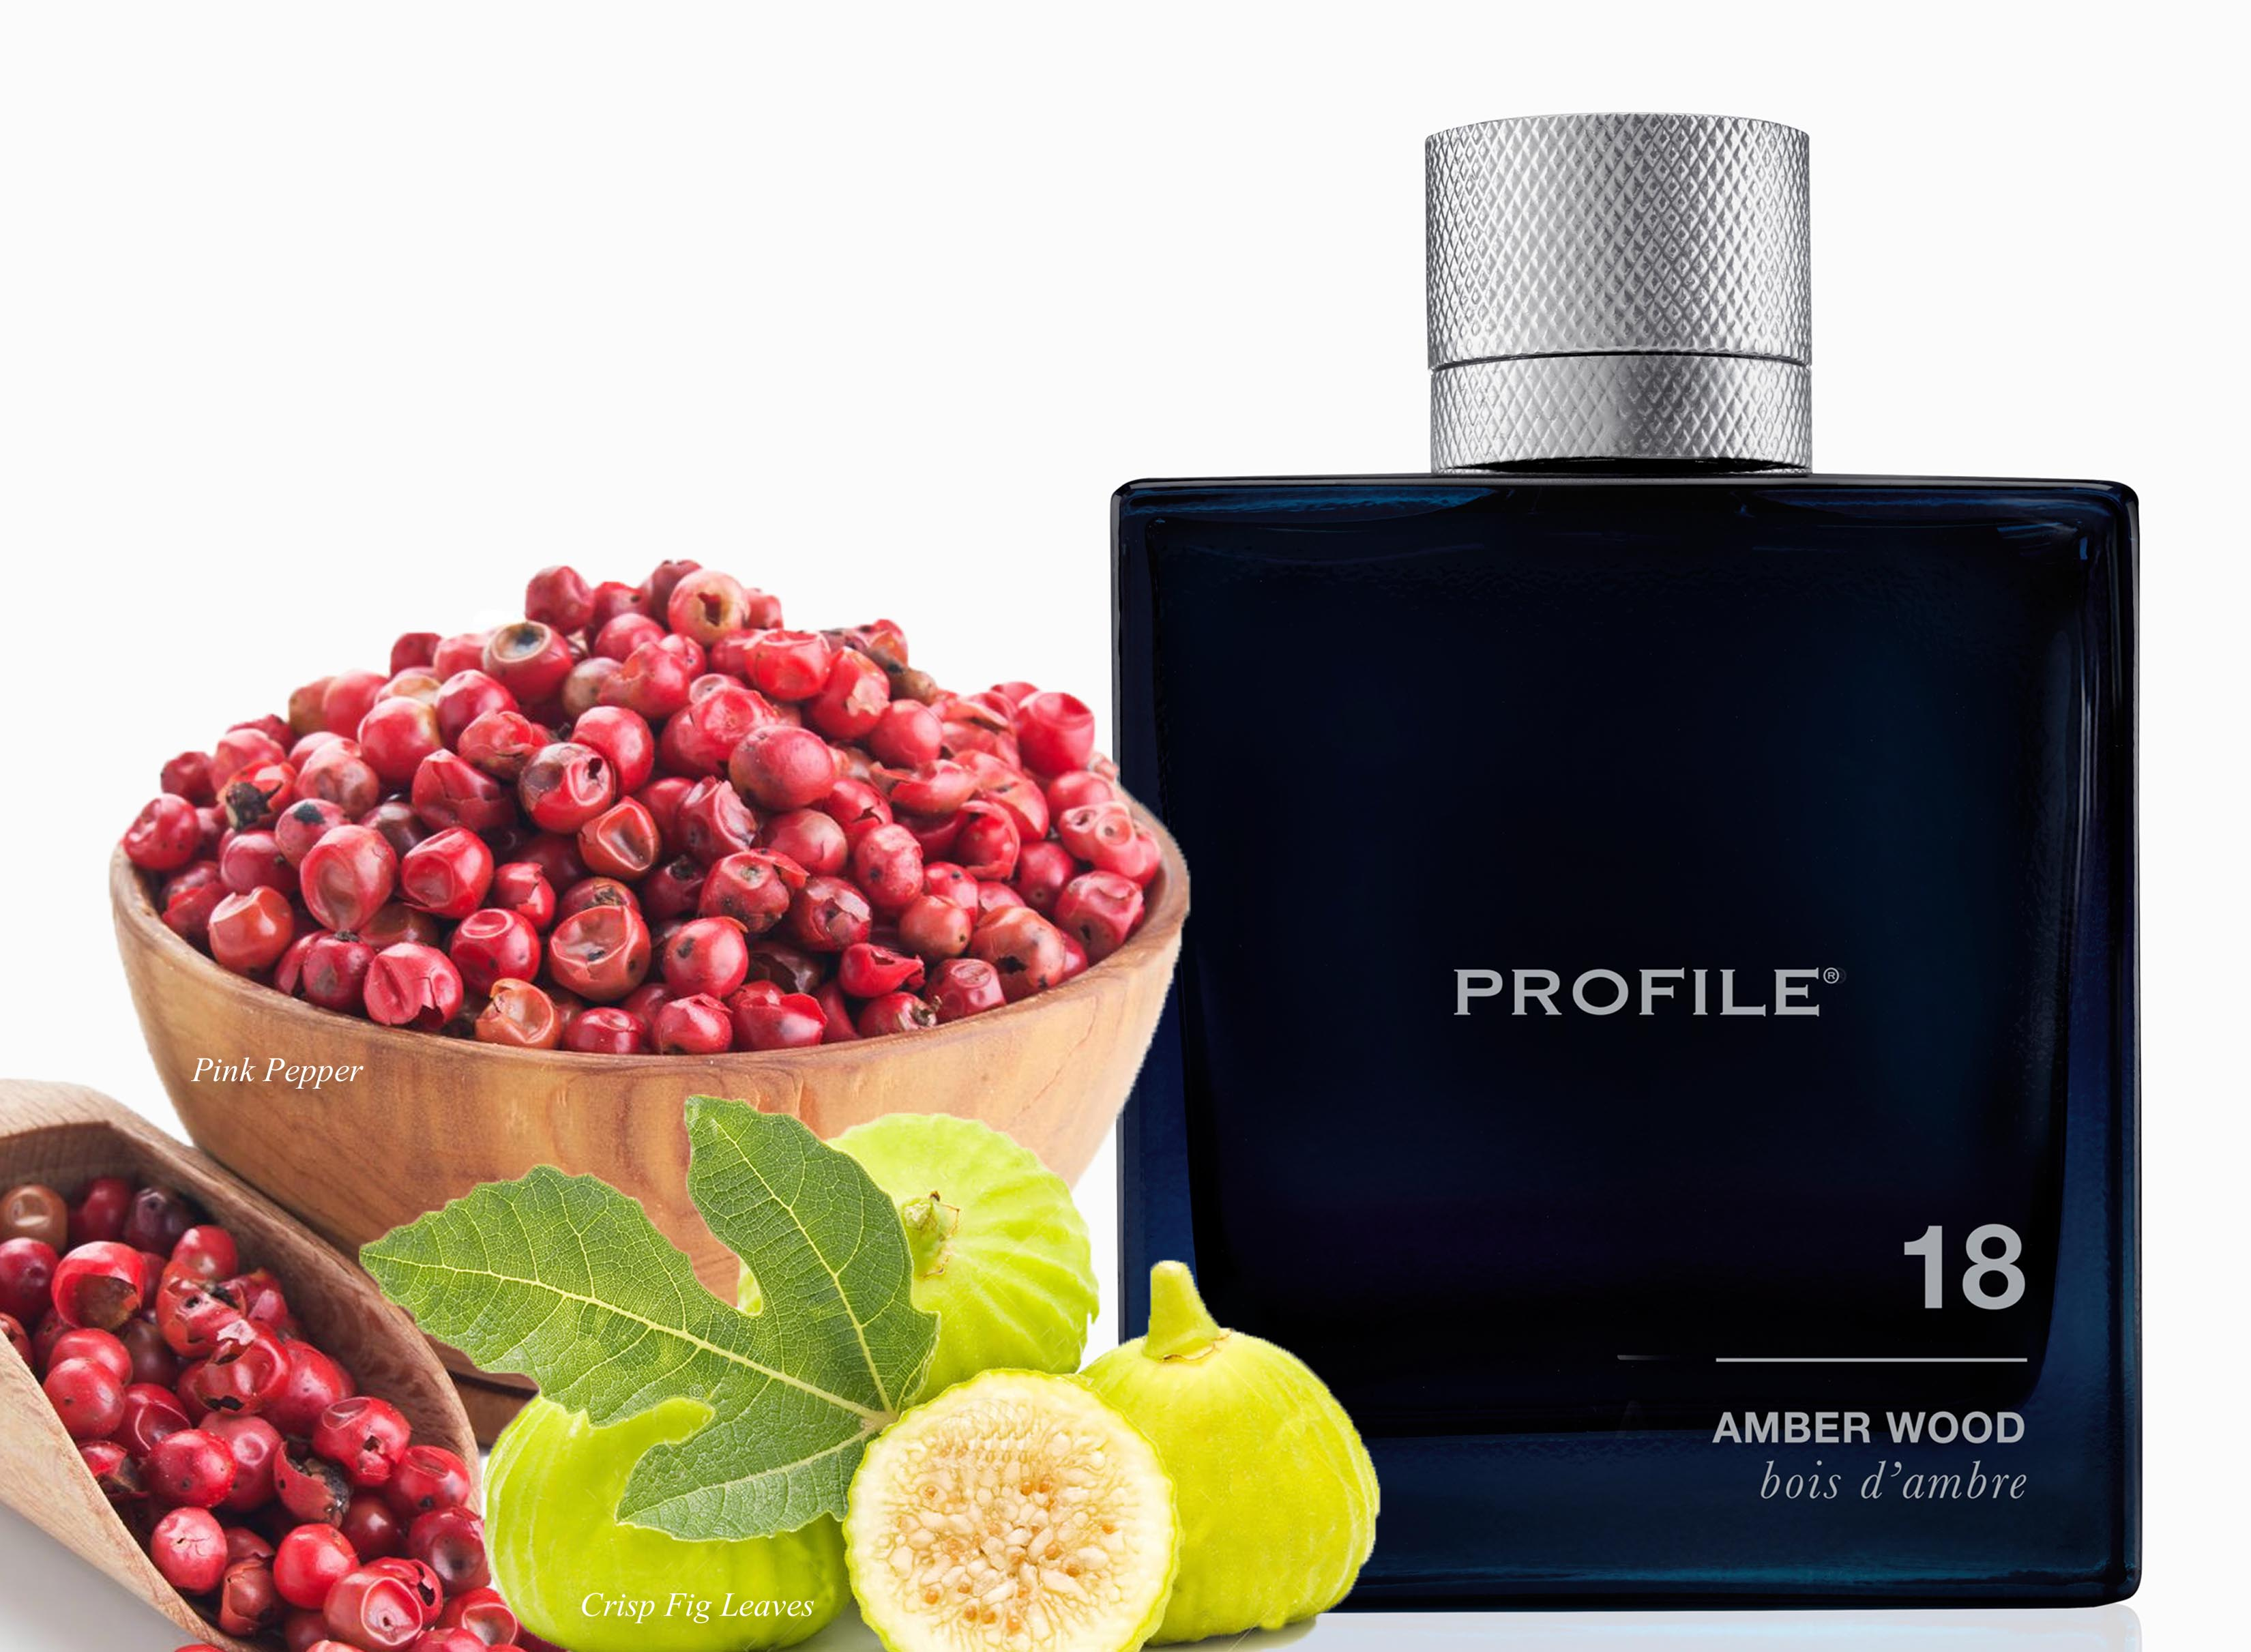 PROFILE, Rob Lowe, 18 Amber Wood fragrance